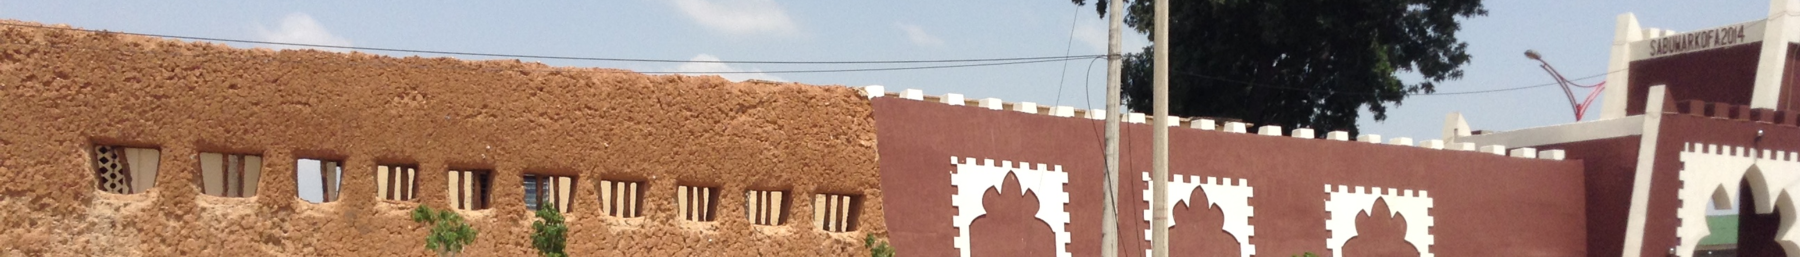 Kano-city-wall-banner.png